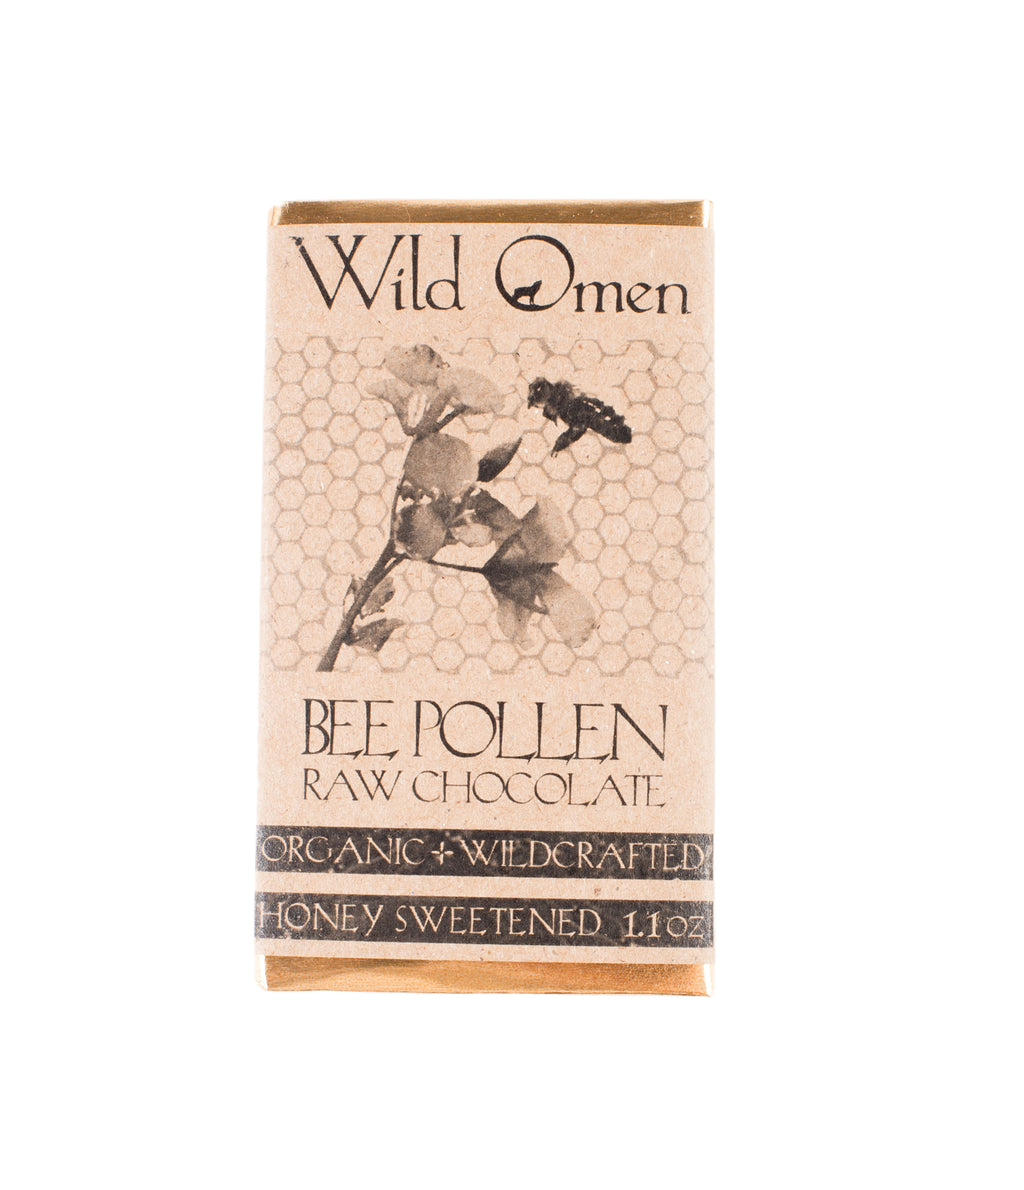 Wild Omen Bee Pollen Raw Chocolate